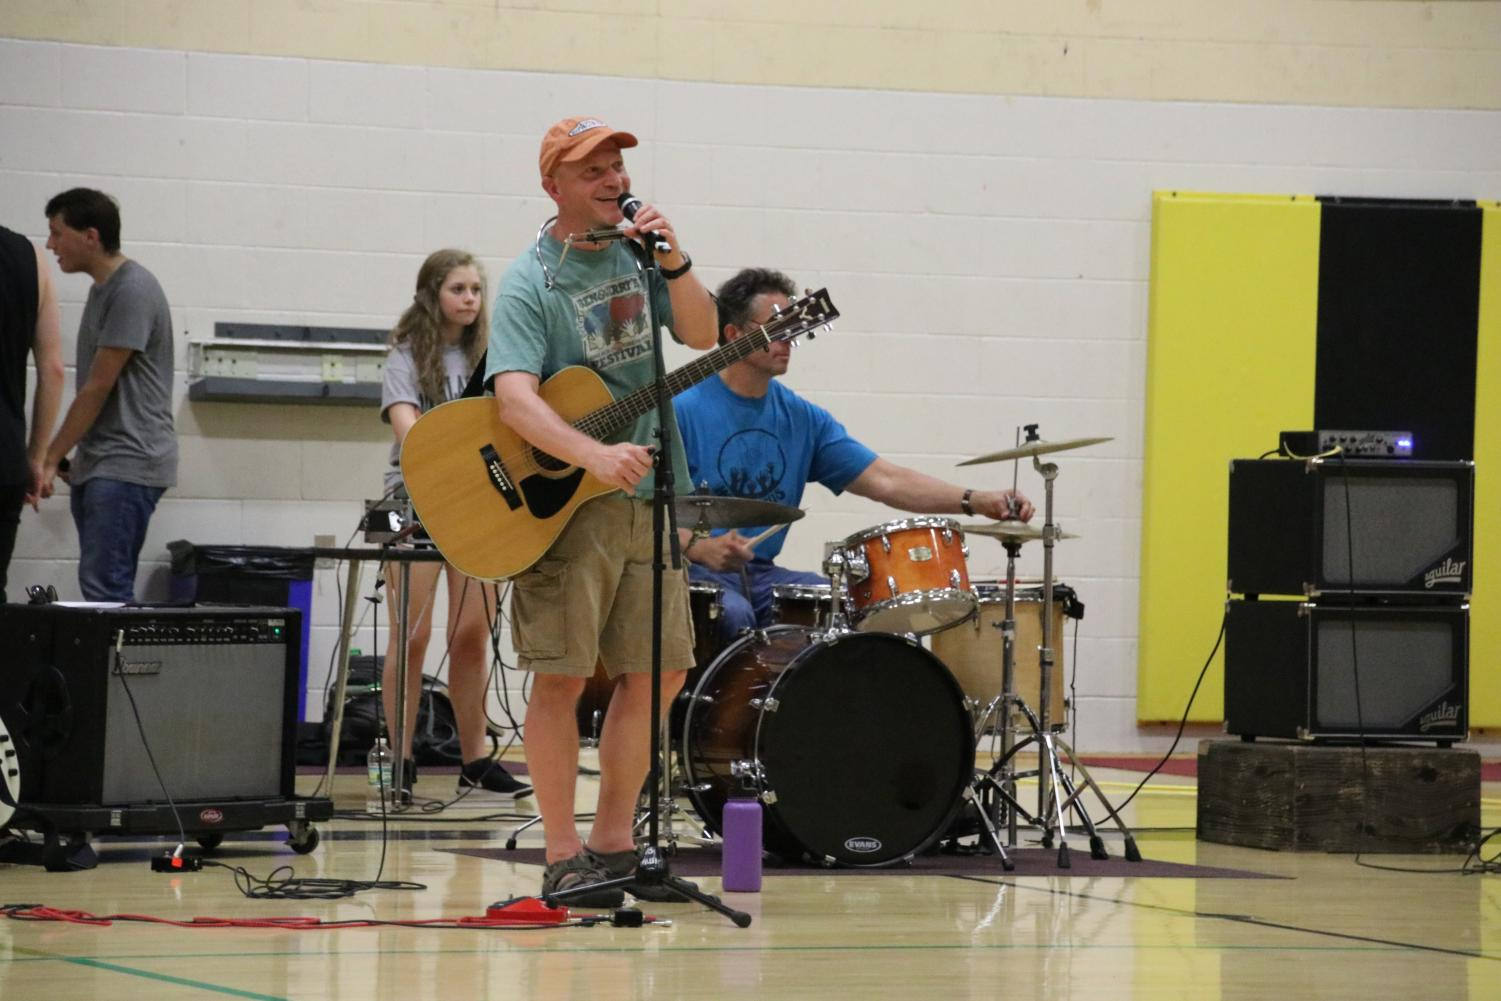 Steve+Dreher+and+friends+also+performed+at+the+talent+show+during+the+Run+for+Hope+day+2018.